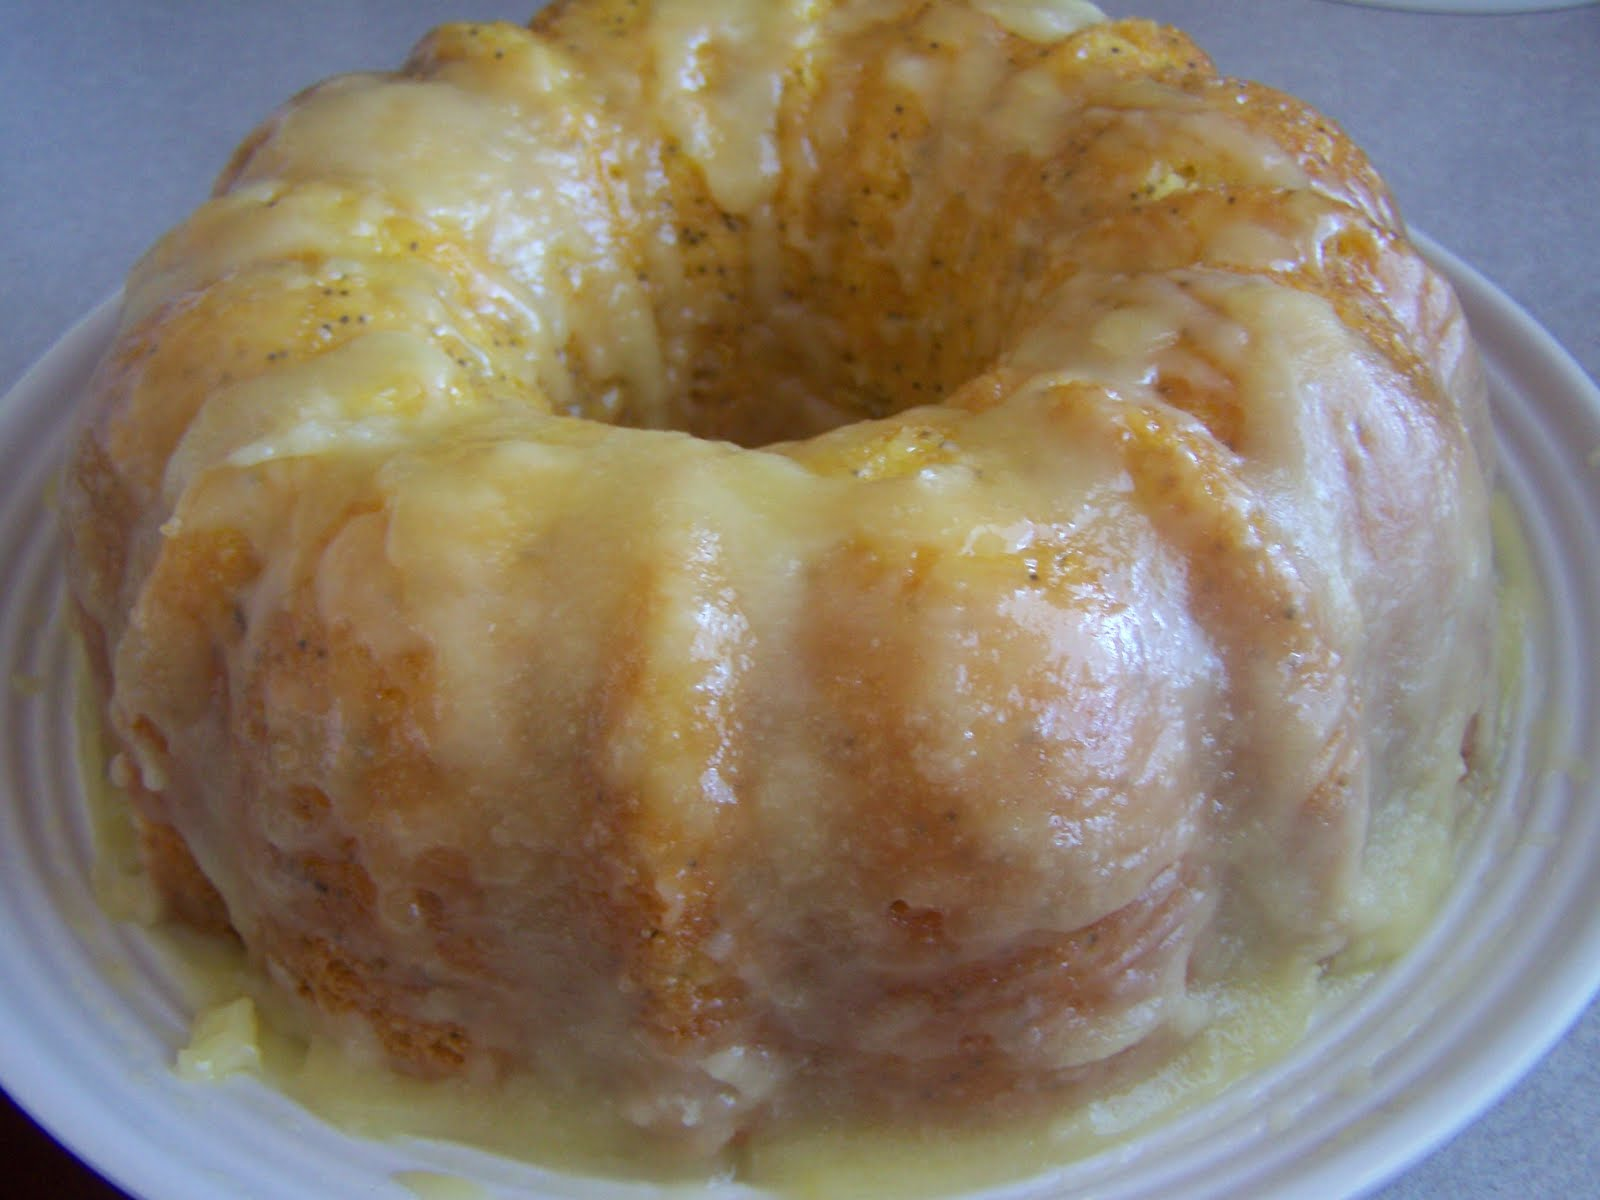 Carrot Cake With Pineapple Glaze